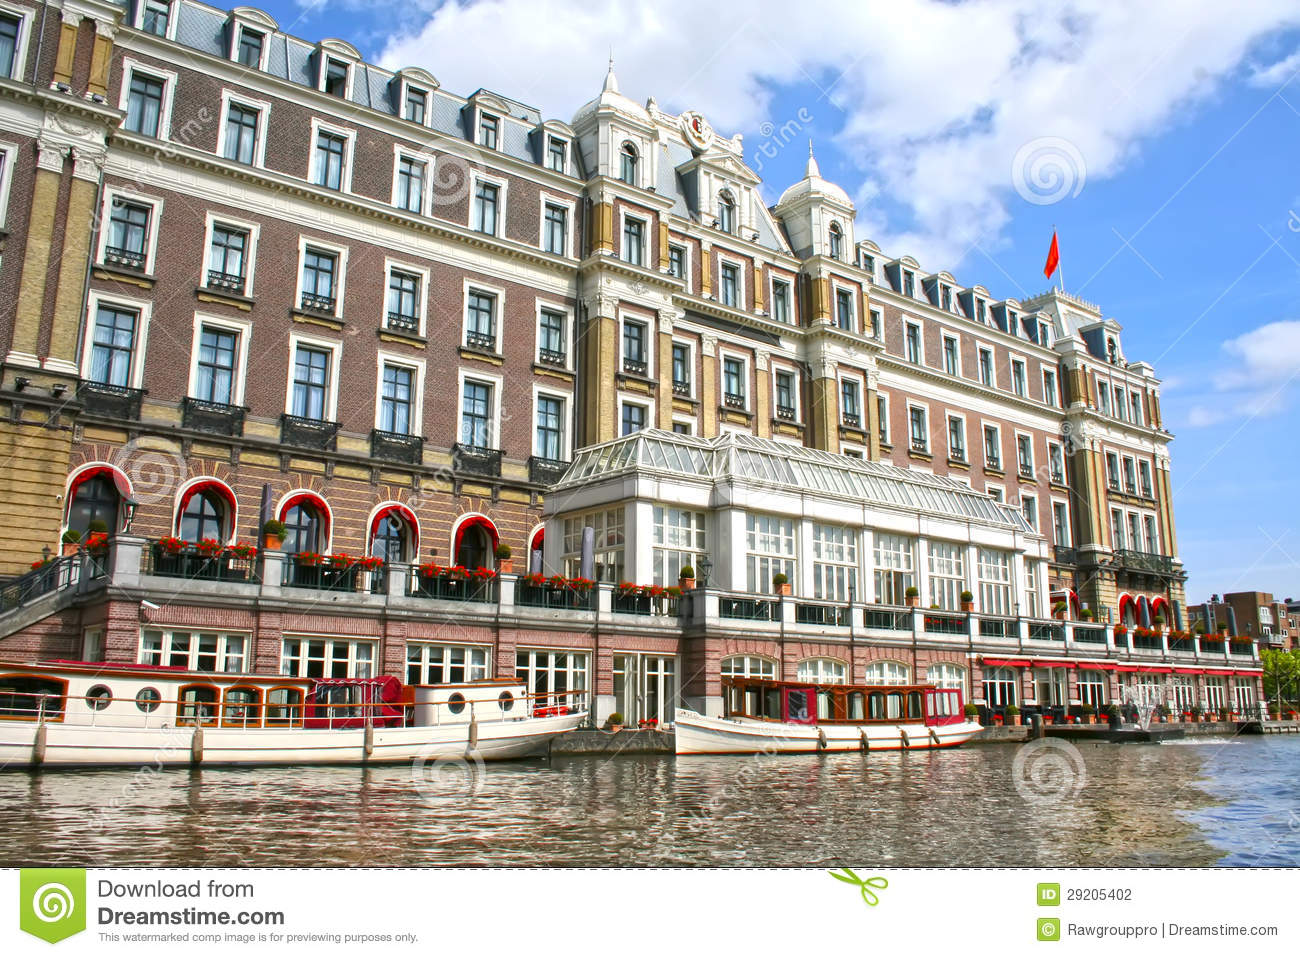 Amstel hotel in amsterdam stock photography image 29205402 - Amstel hotel amsterdam ...